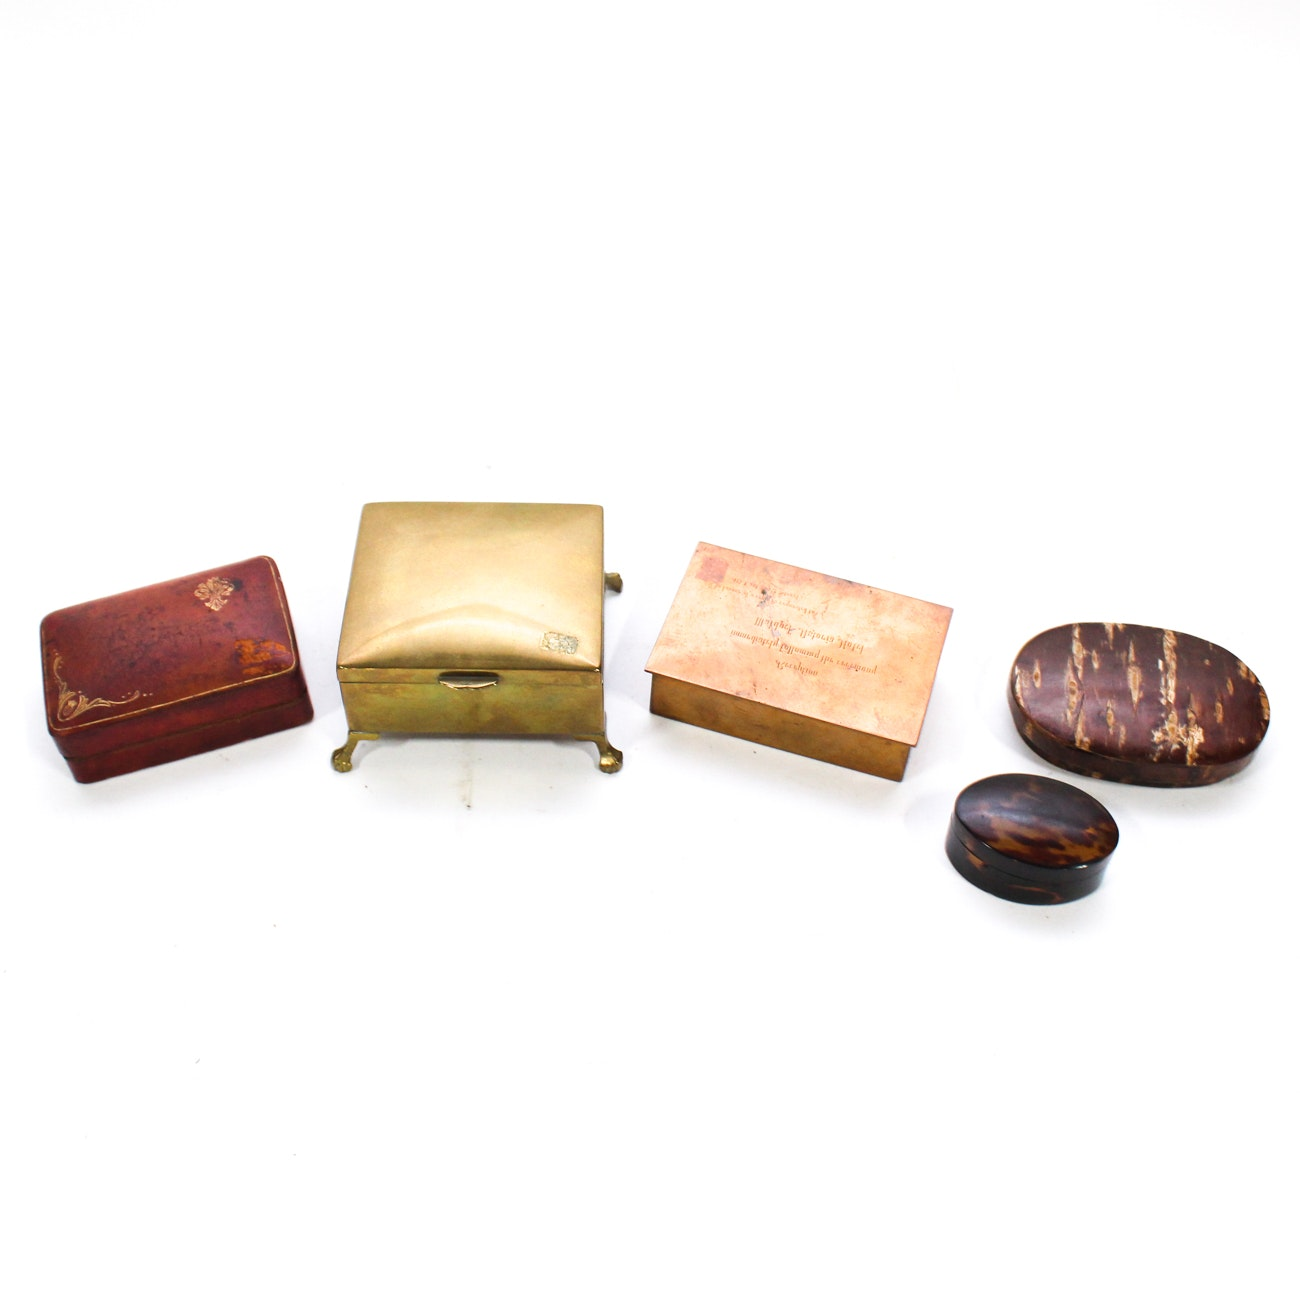 Collection of Brass and Leather Boxes, 20th Century